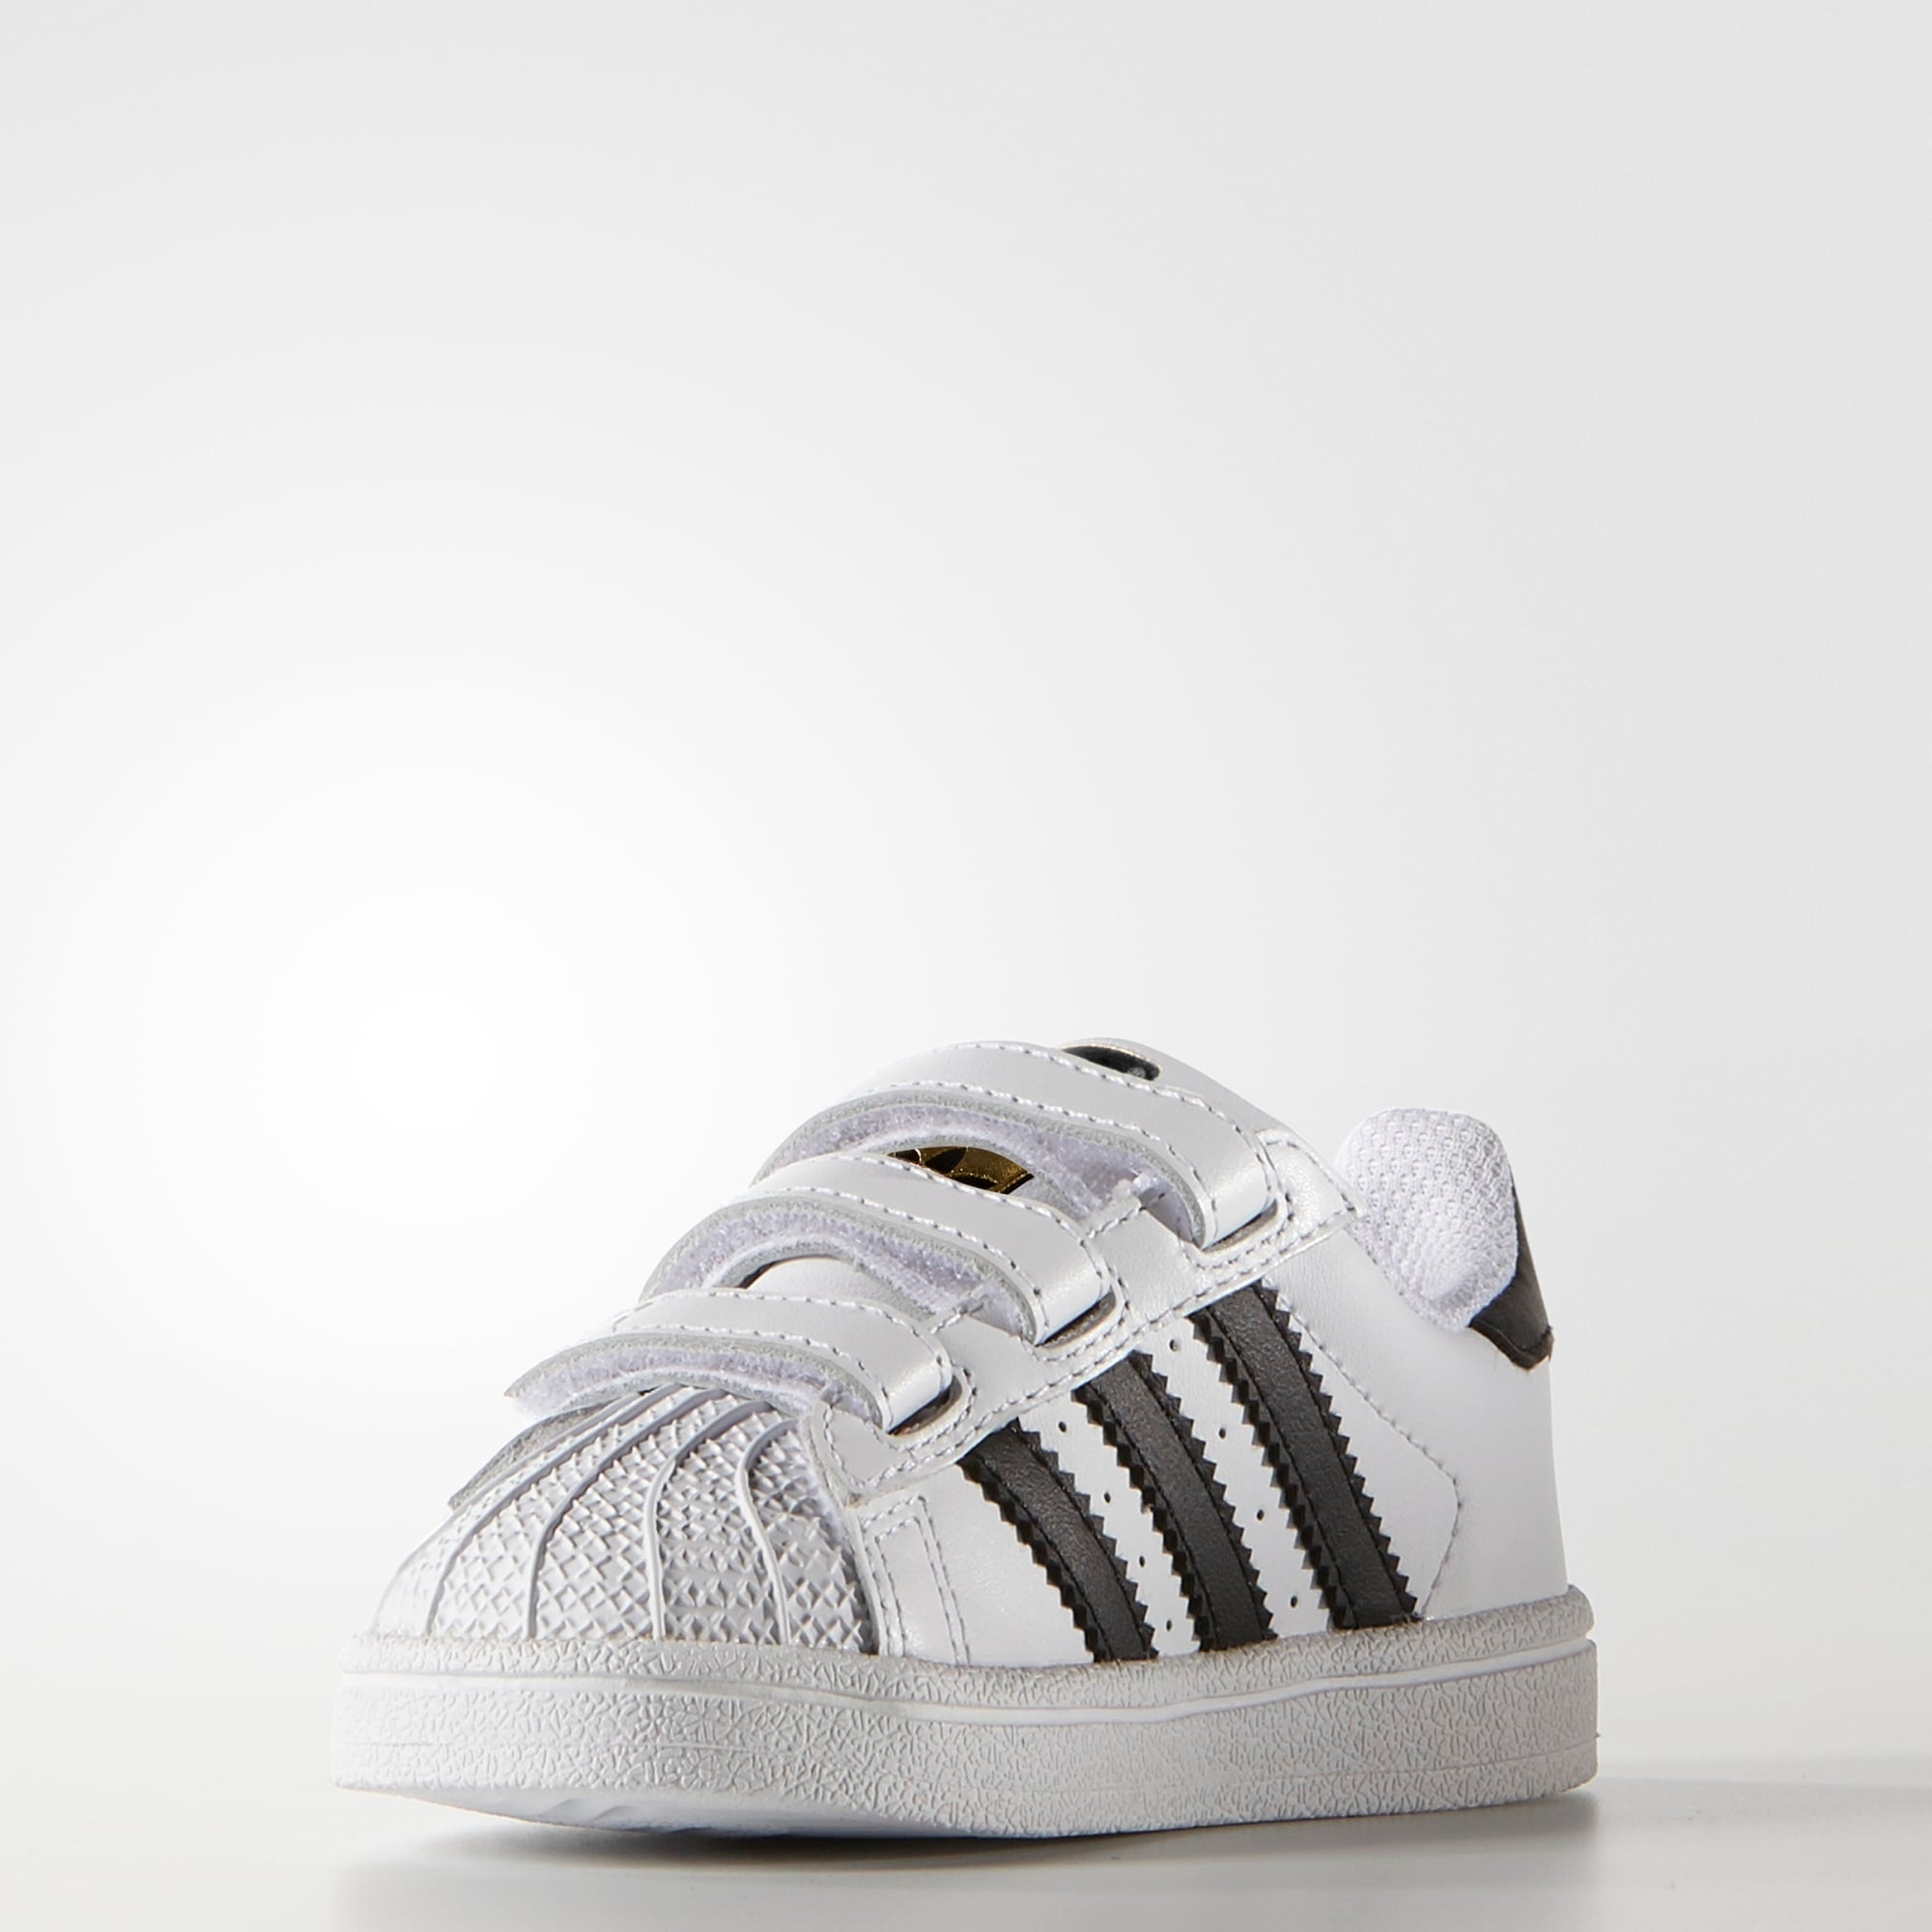 2c51d55308df3a Toddler s adidas Superstar Foundation Comfort Strap Shoes Cloud White. 1